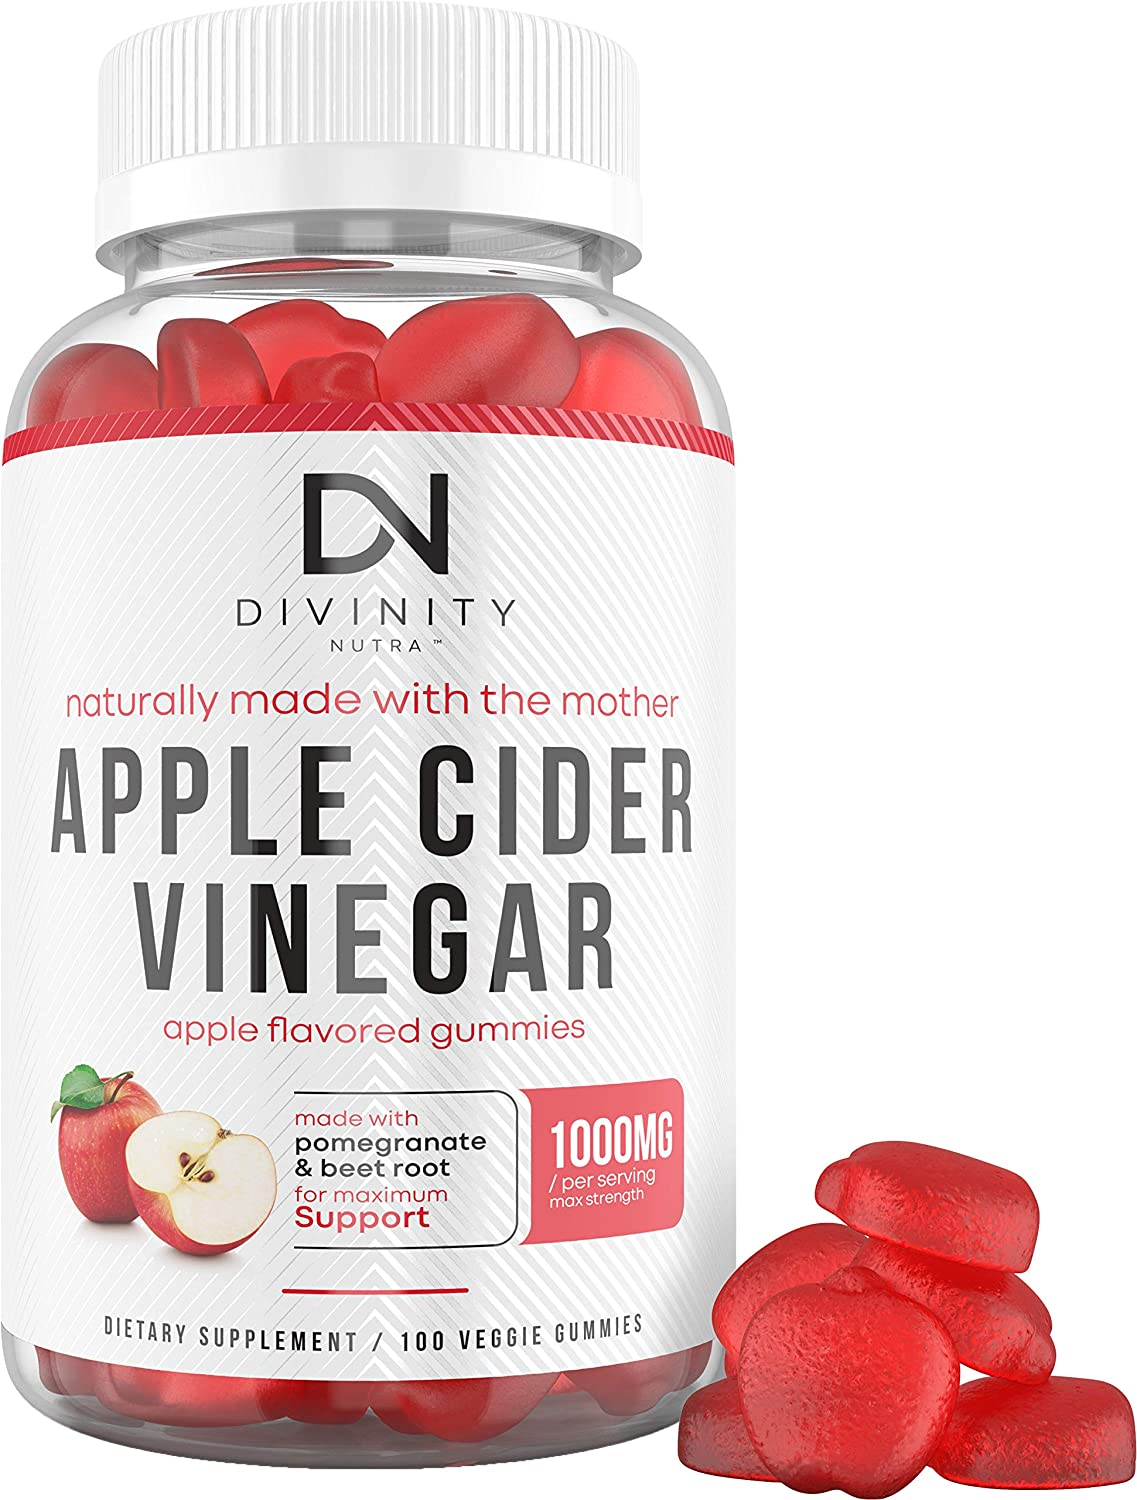 Apple Cider Vinegar Gummies for Weight Loss - Nutritional Supplement for Detox, Cleanse, and Immunity - Max Strength ACV Gummy Vitamins with The Mother - 100 Gummies (50 Day Supply)